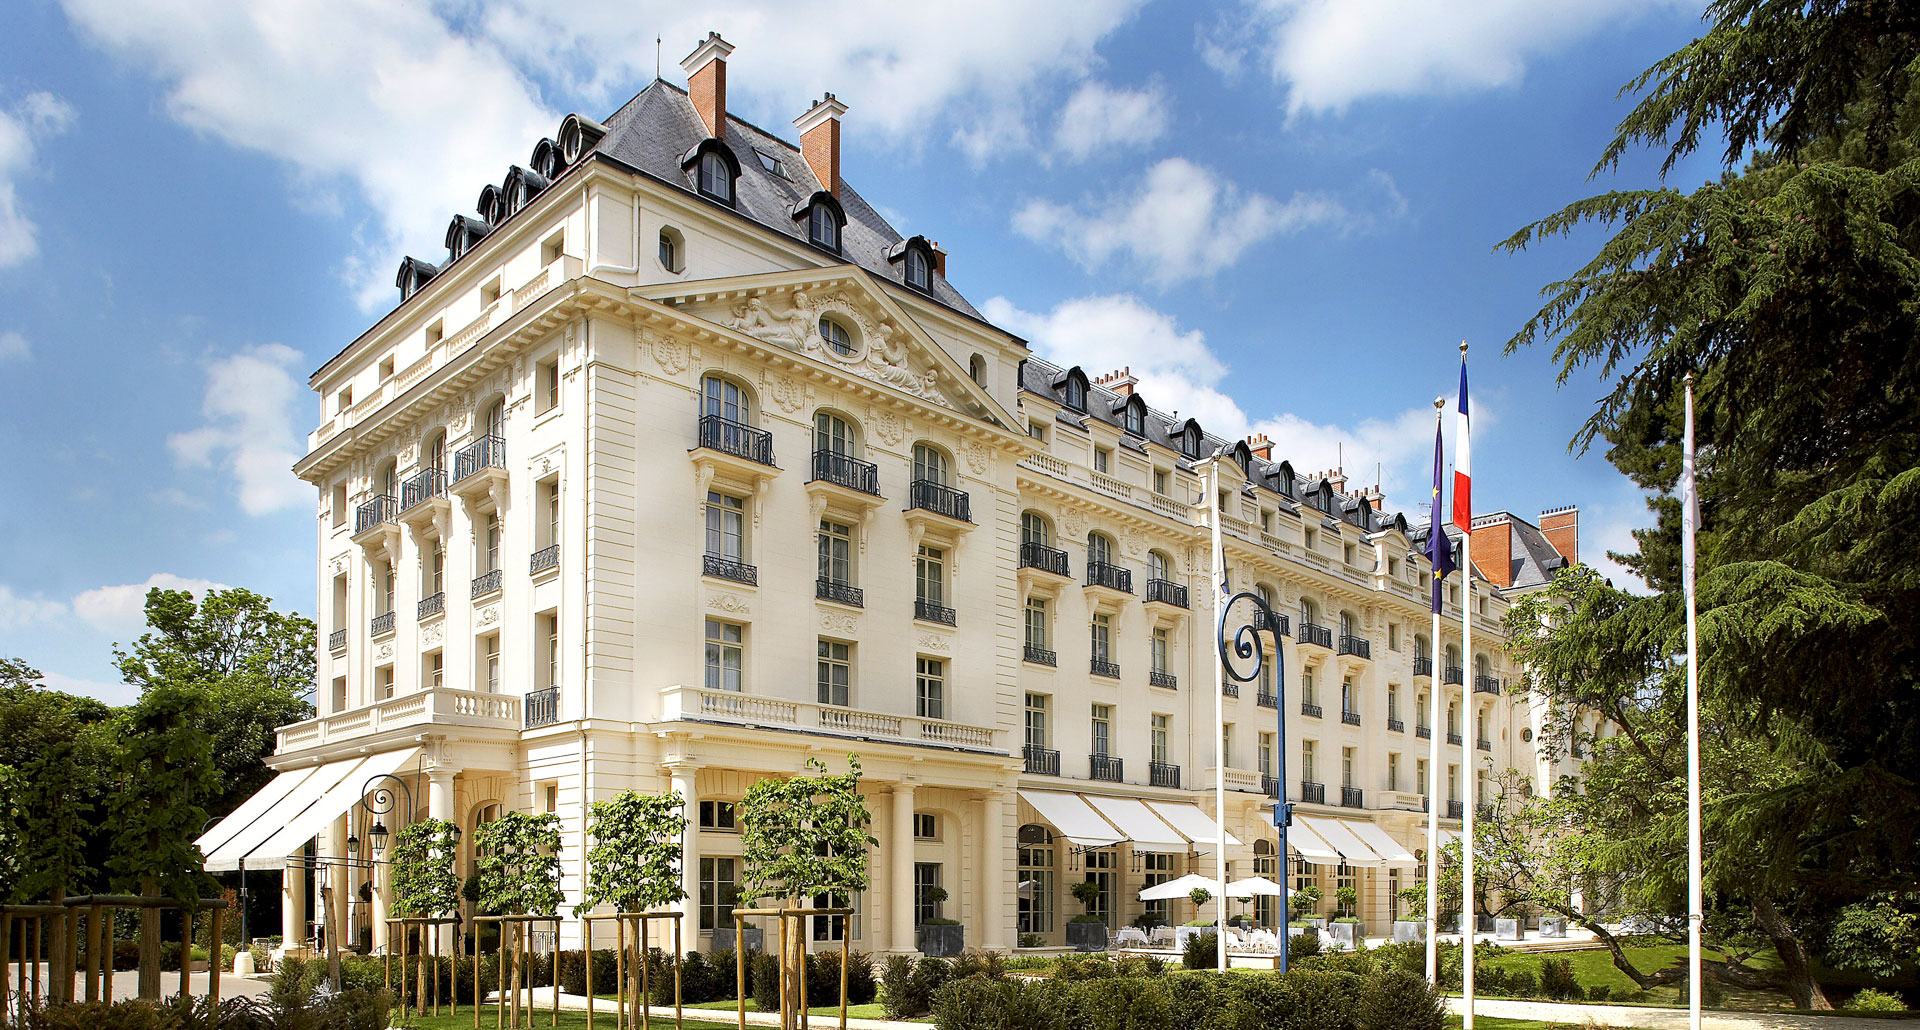 Trianon Palace - boutique hotel in Versailles